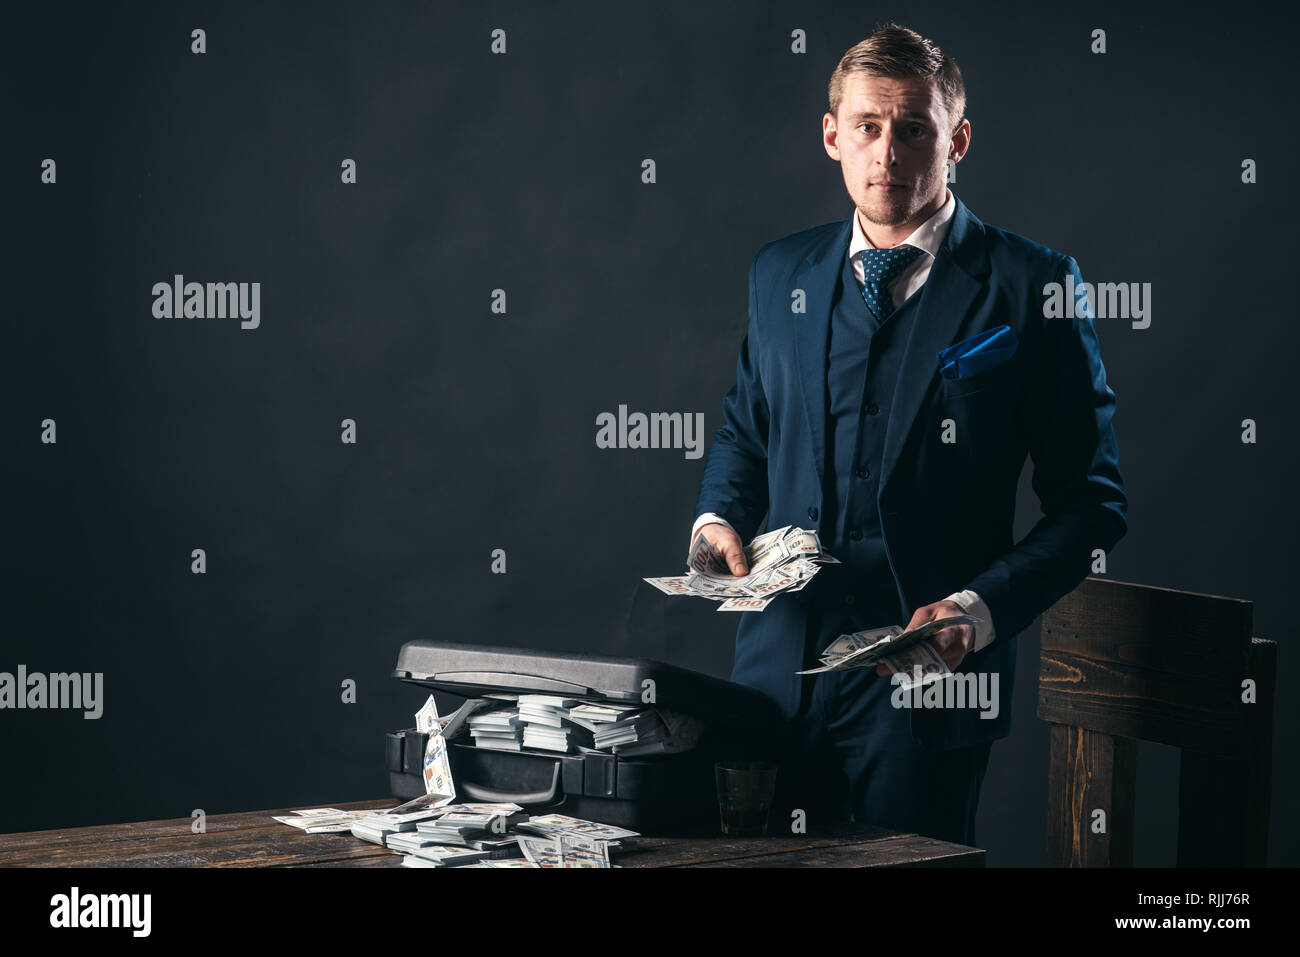 Economy and finance. Man bookkeeper. Businessman work in accountant office. Money transaction. Man in suit. Mafia. Making money. Small business - Stock Image